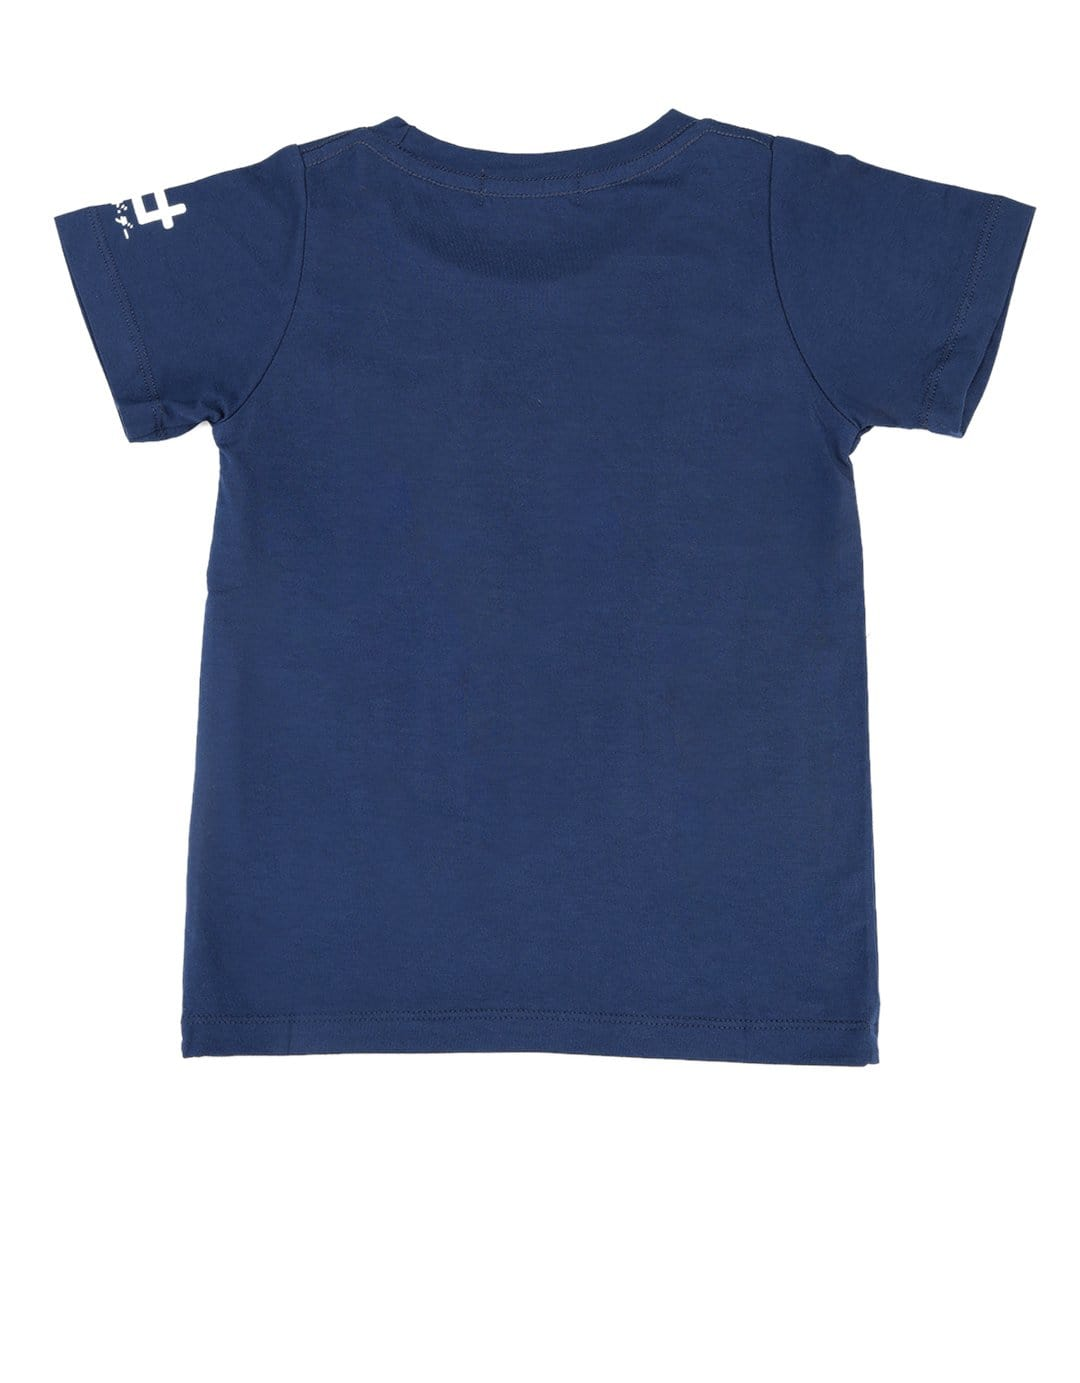 DT135 thirdday kaos balita tido badge navy